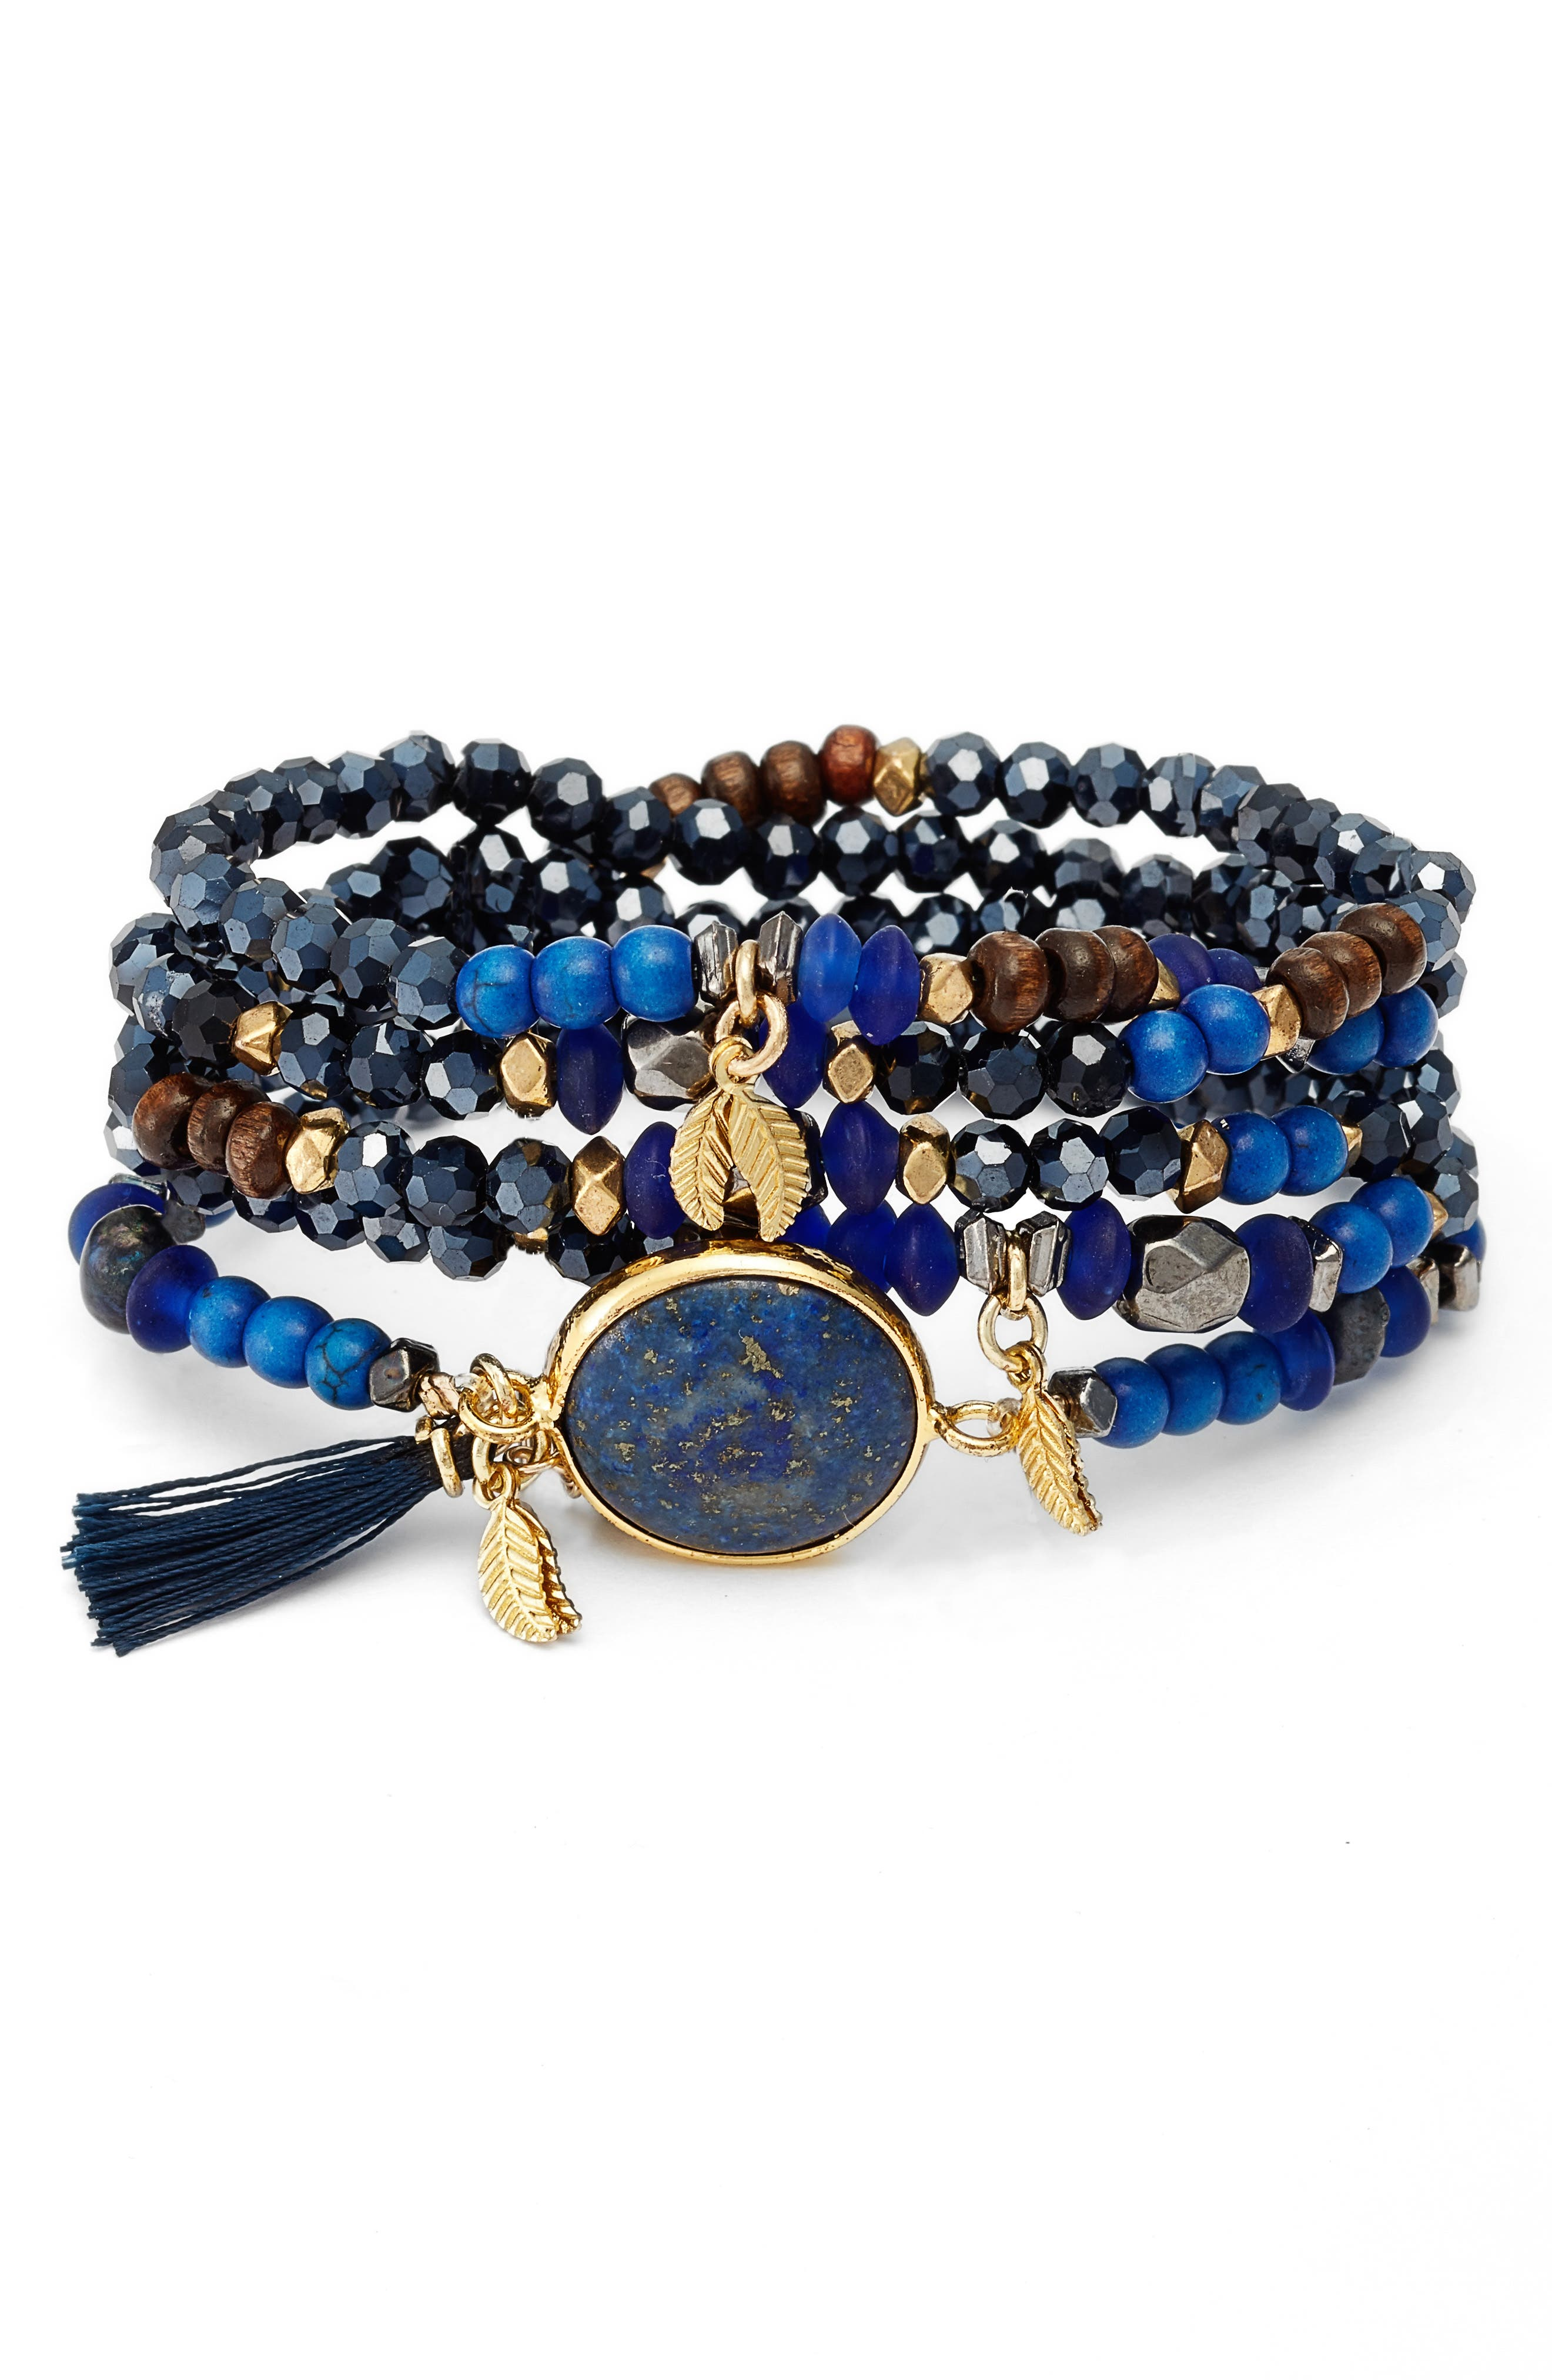 Main Image - Nakamol Design Crystal & Lapis Stretch Bracelet